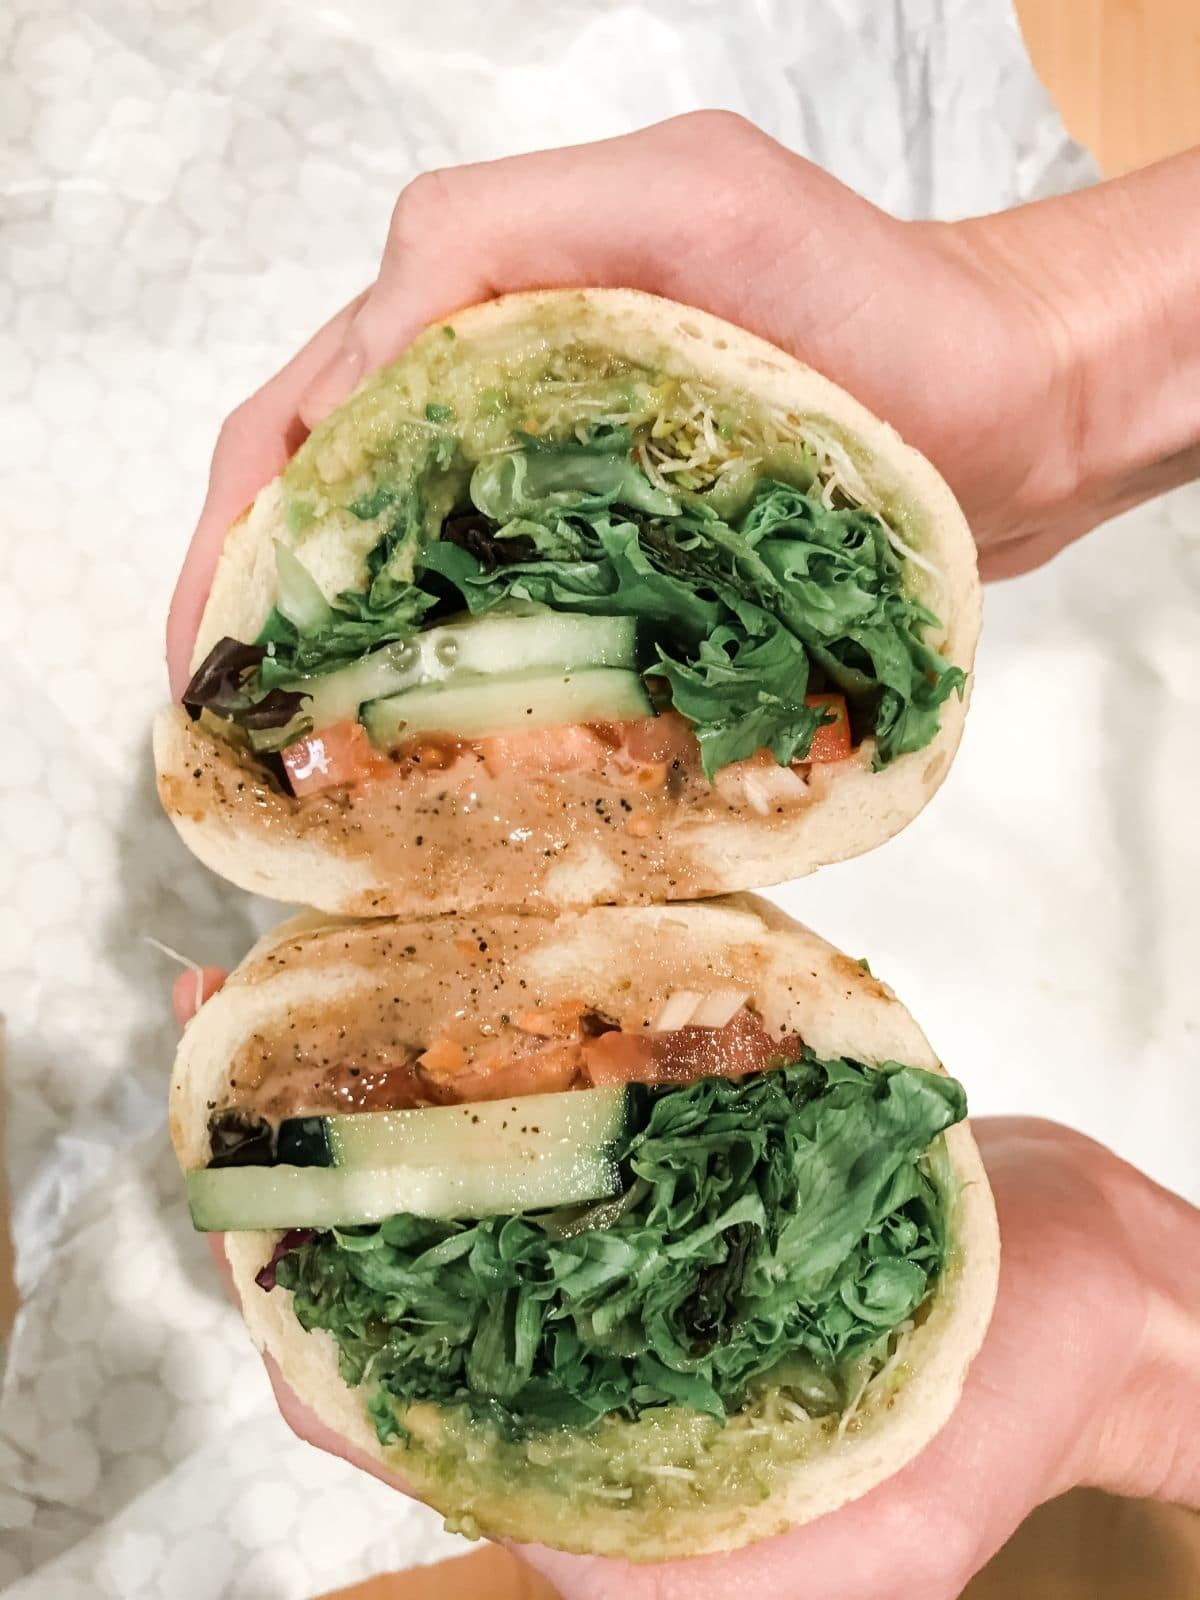 fresh veggie sandwich from buds with cucumber, lettuce, tomato, avocado, sprouts, and house vinaigrette being held up in a persons hands